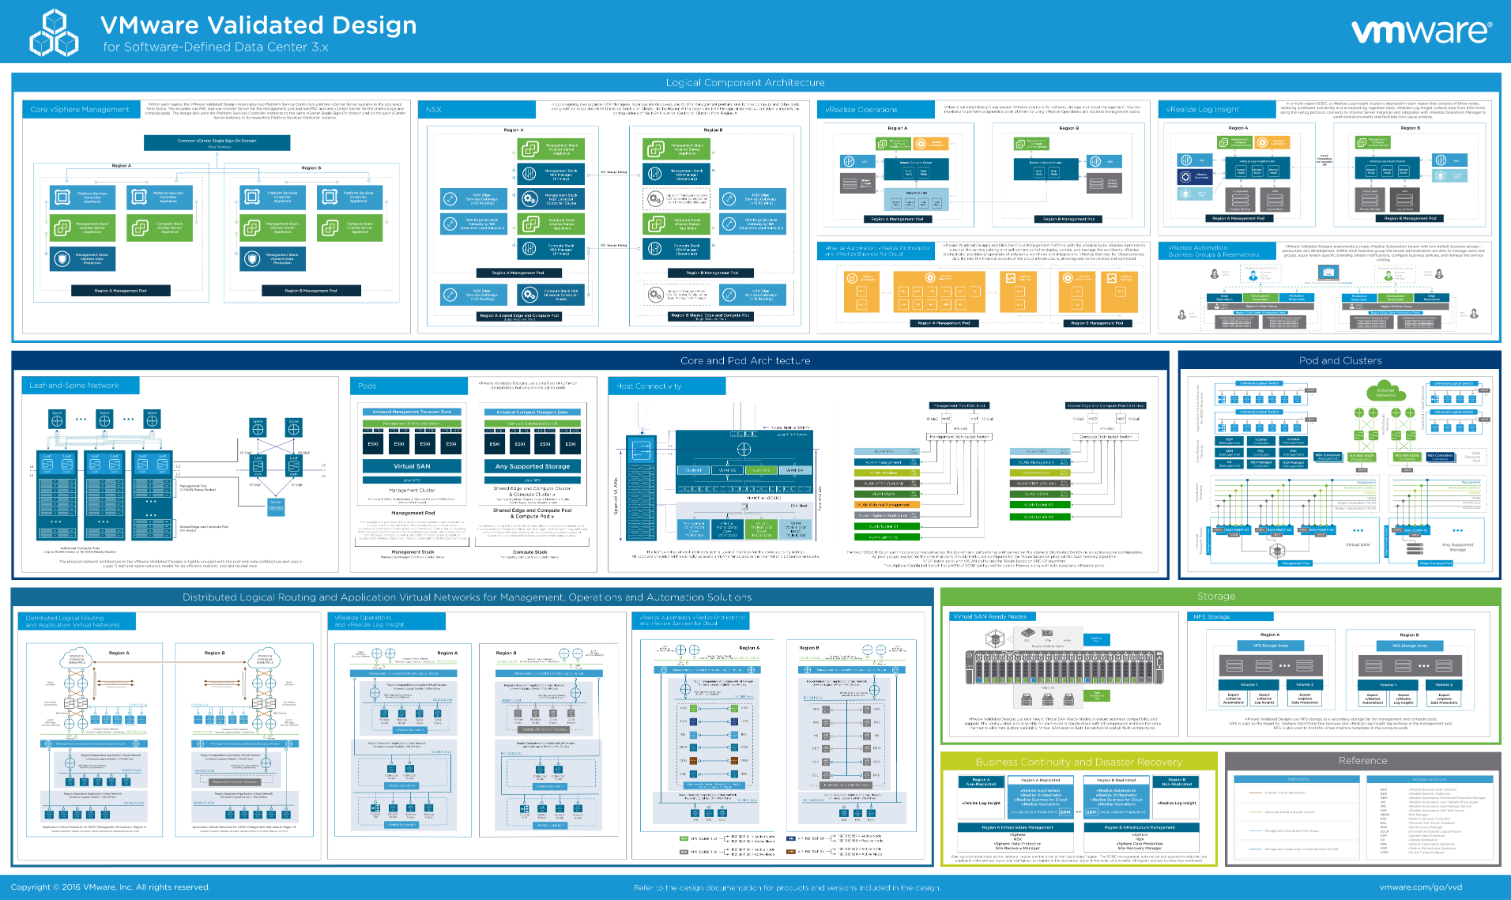 VMware Validated Design for Software-Defined Data Center 3.x Poster